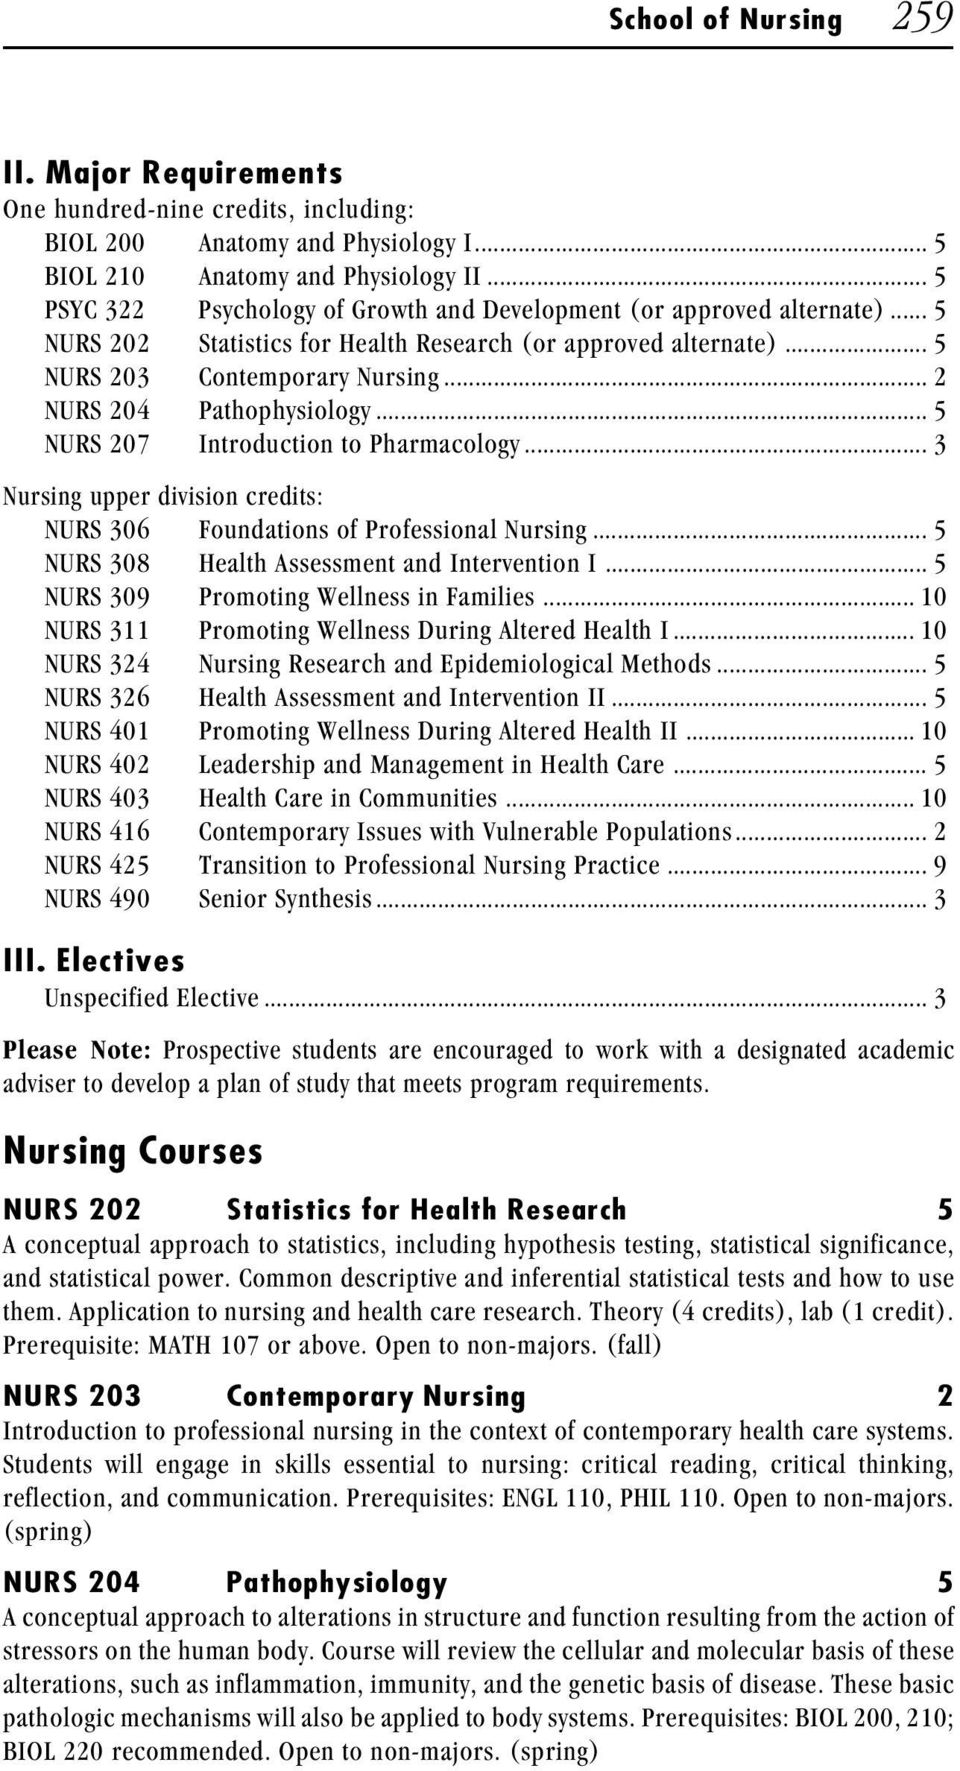 .. 2 NURS 204 Pathophysiology... 5 NURS 207 Introduction to Pharmacology... 3 Nursing upper division credits: NURS 306 Foundations of Professional Nursing.